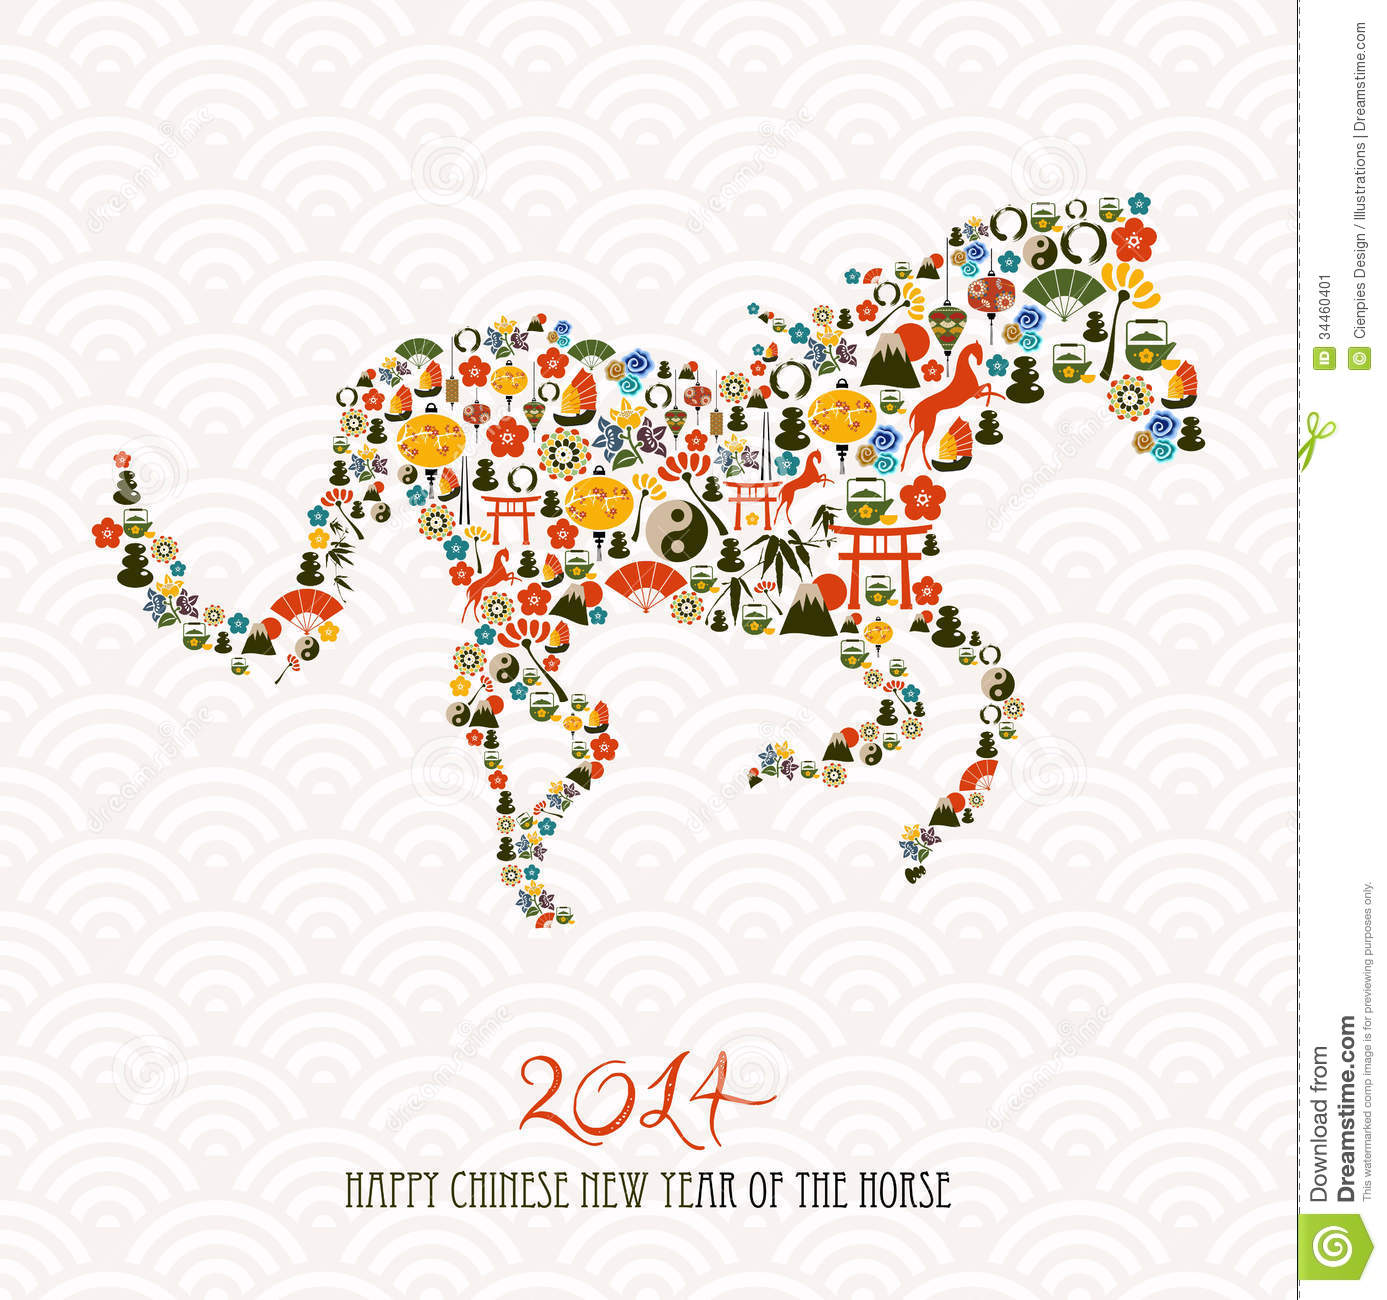 Chinese Calendar Illustration : Chinese new year of the horse illustration vector file